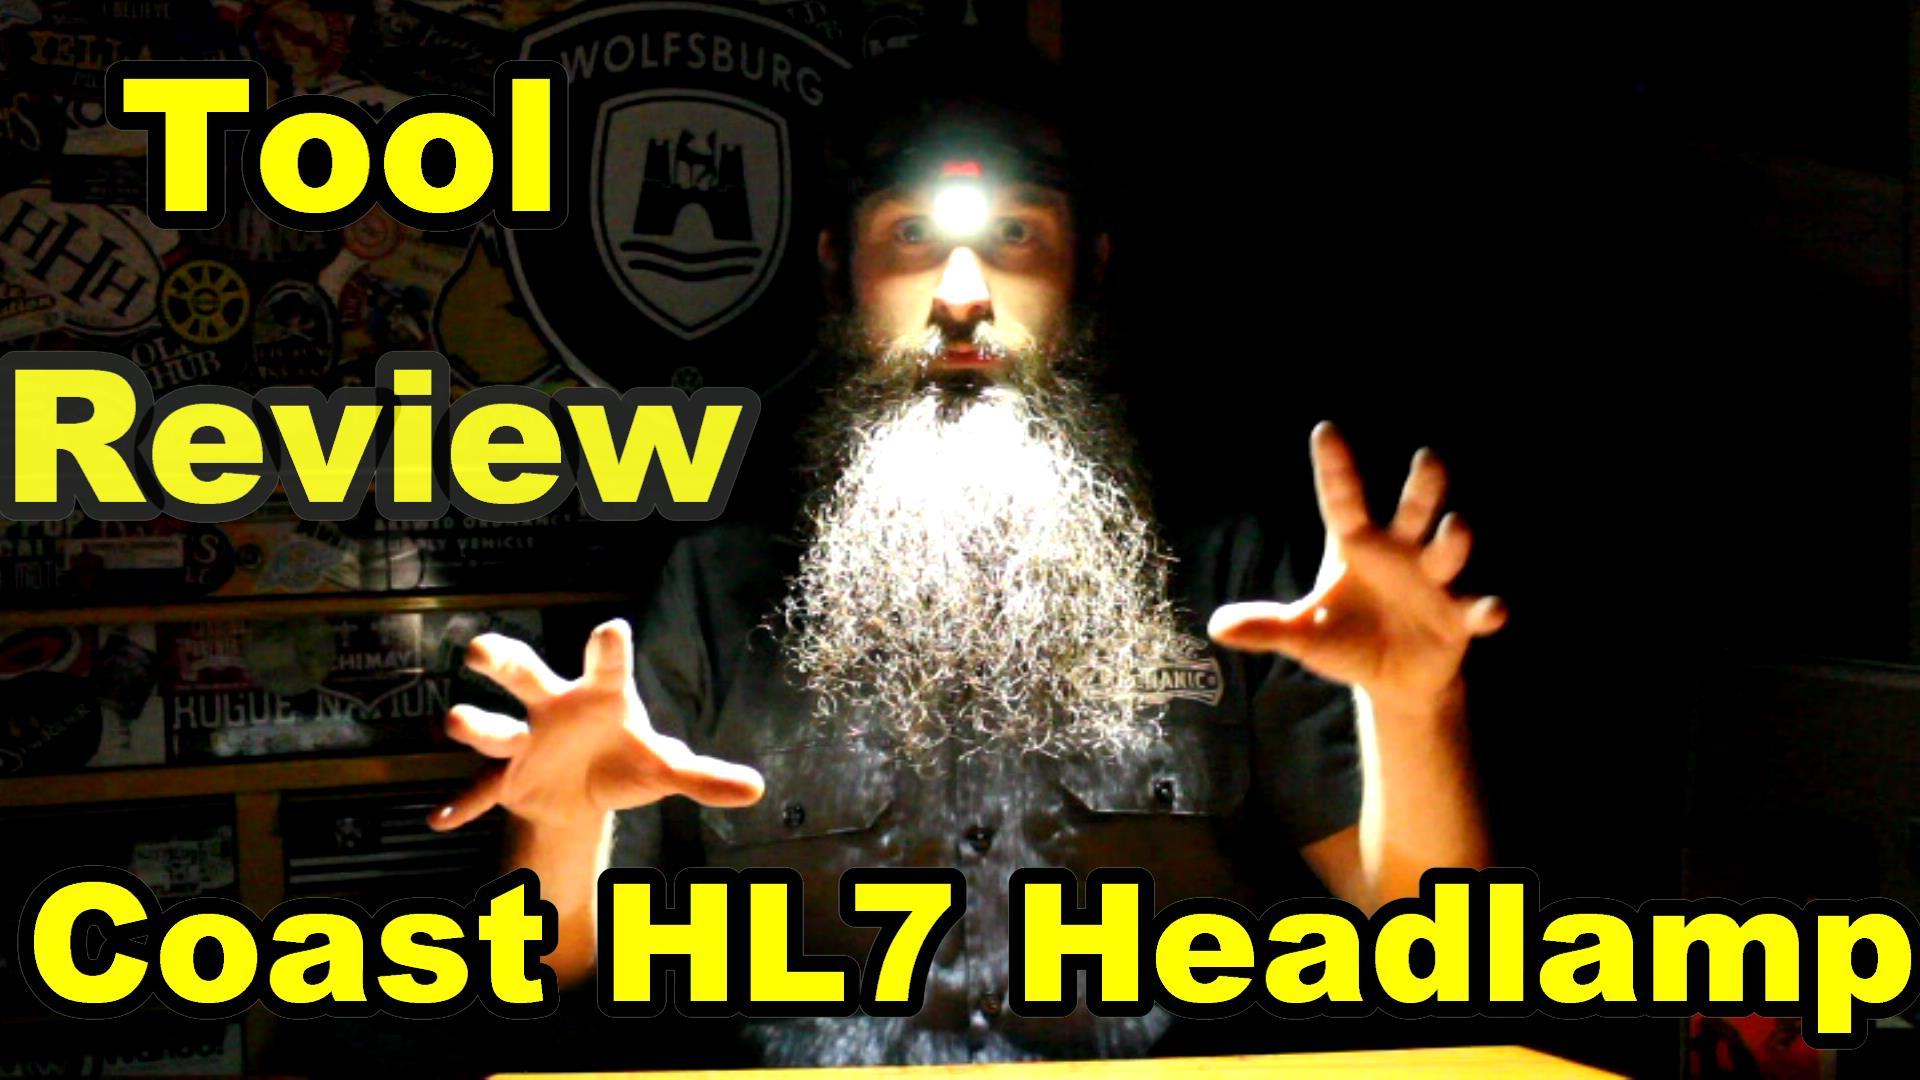 Coast Headlamp Review